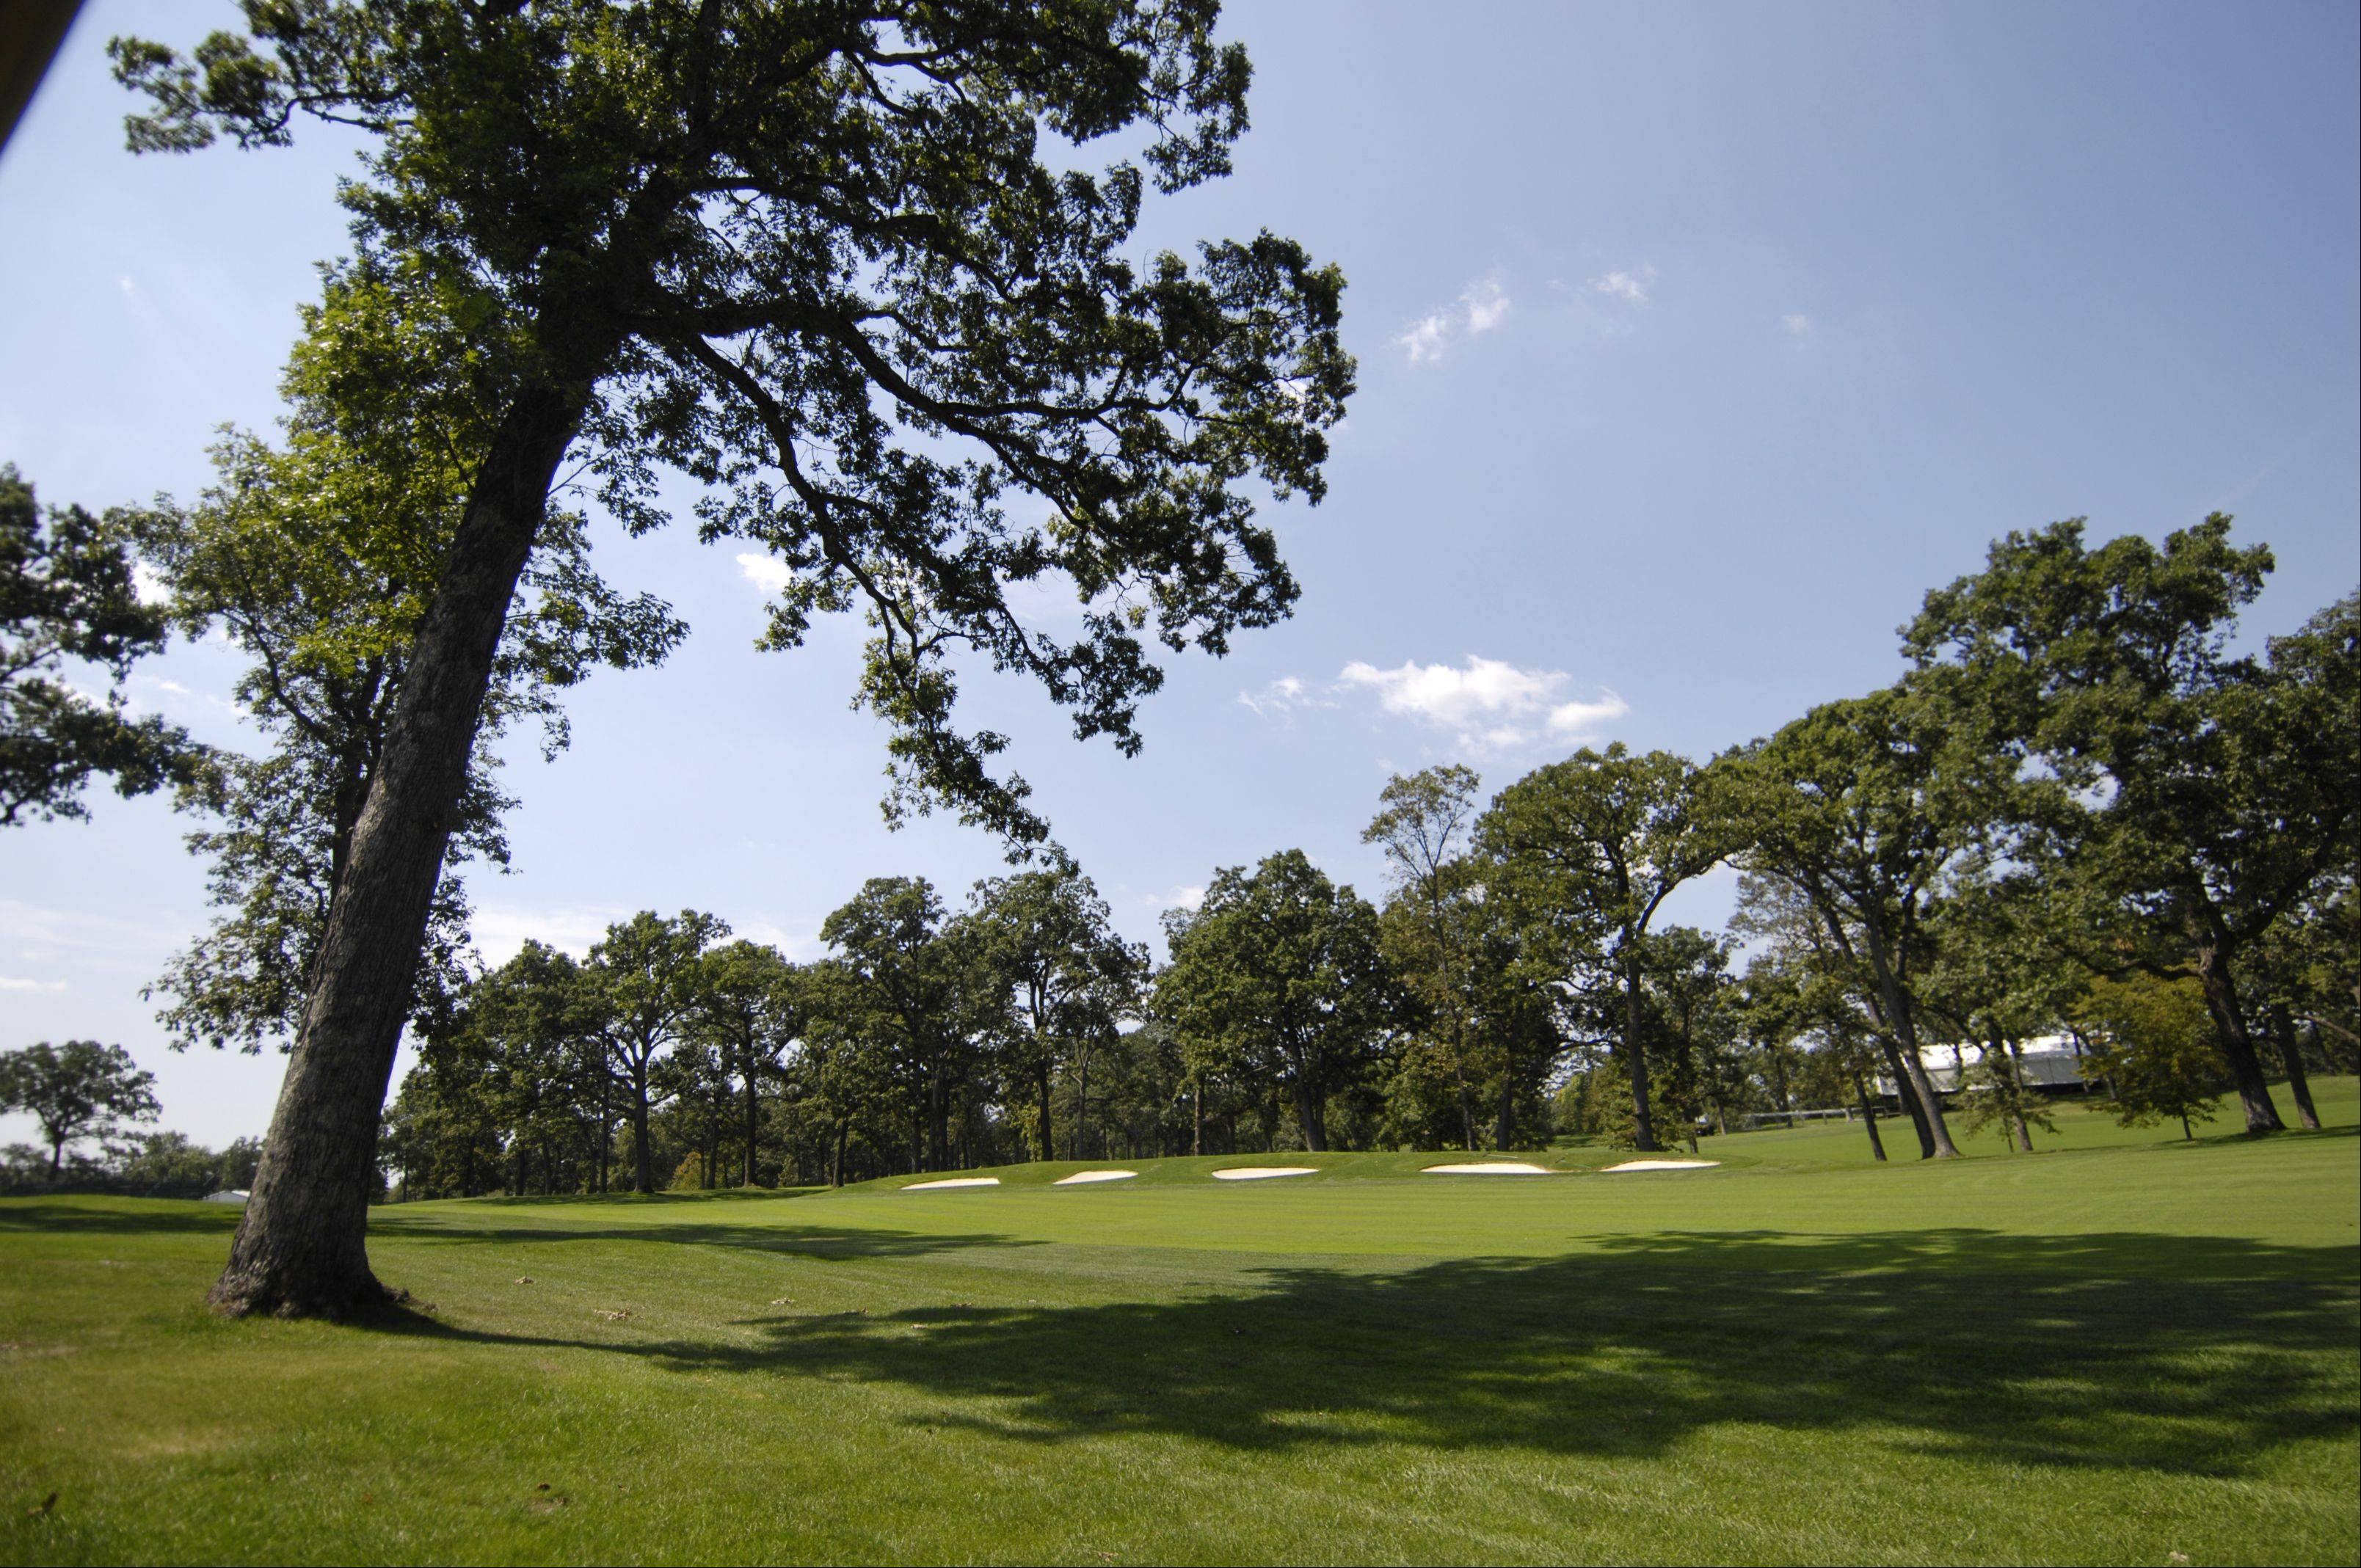 Improvements to the Medinah Country Club course included the removal of hundreds of trees to help air flow and growing conditions.